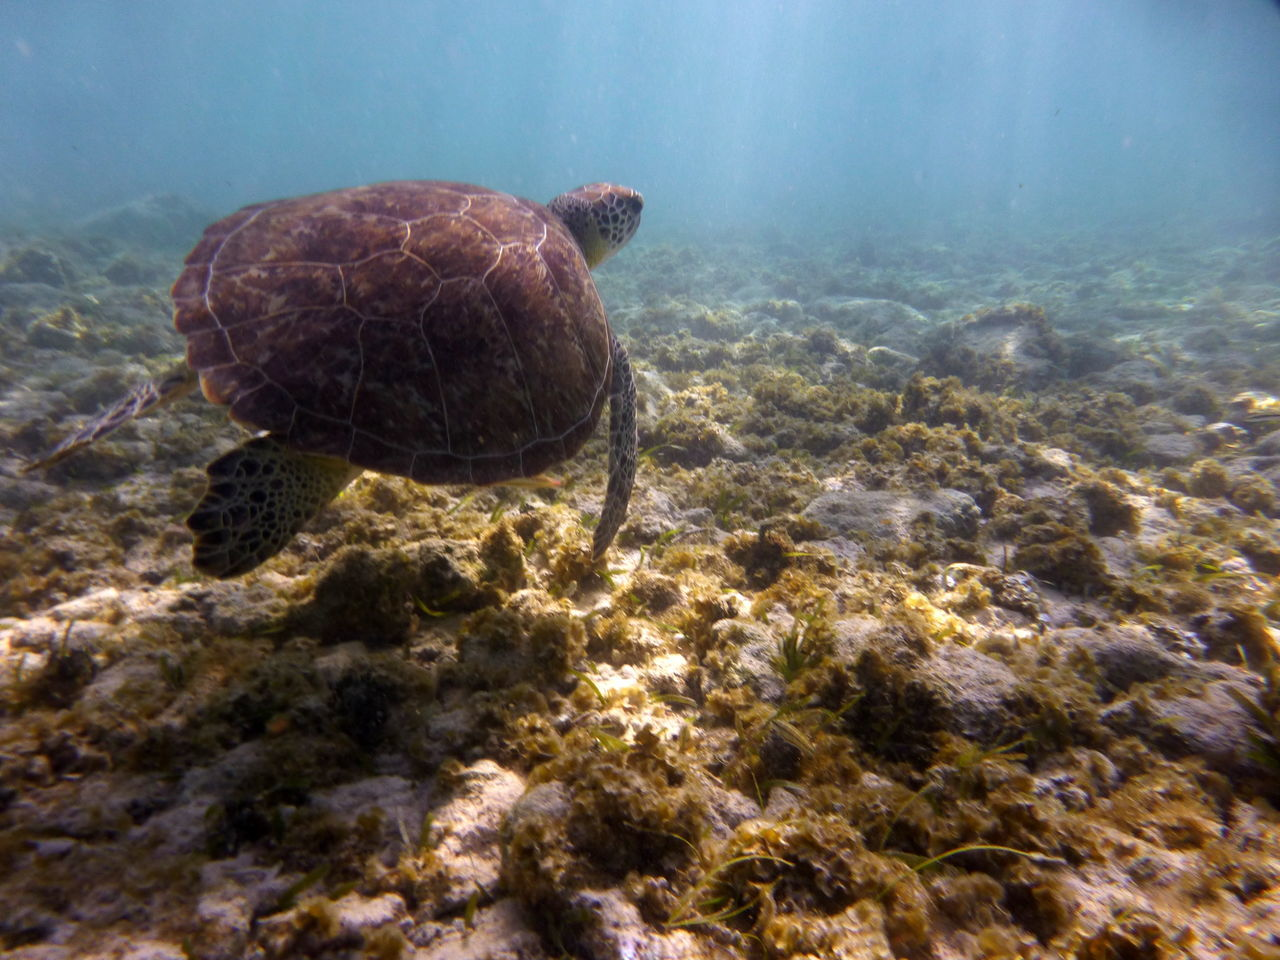 Turtle at Spotts Beach Turtle Underwater Photography Hawksbill Turtle Vacations Outdoors Caymanislands Cayman Caribbean Animal Love Wildlife & Nature Wildlifephotography